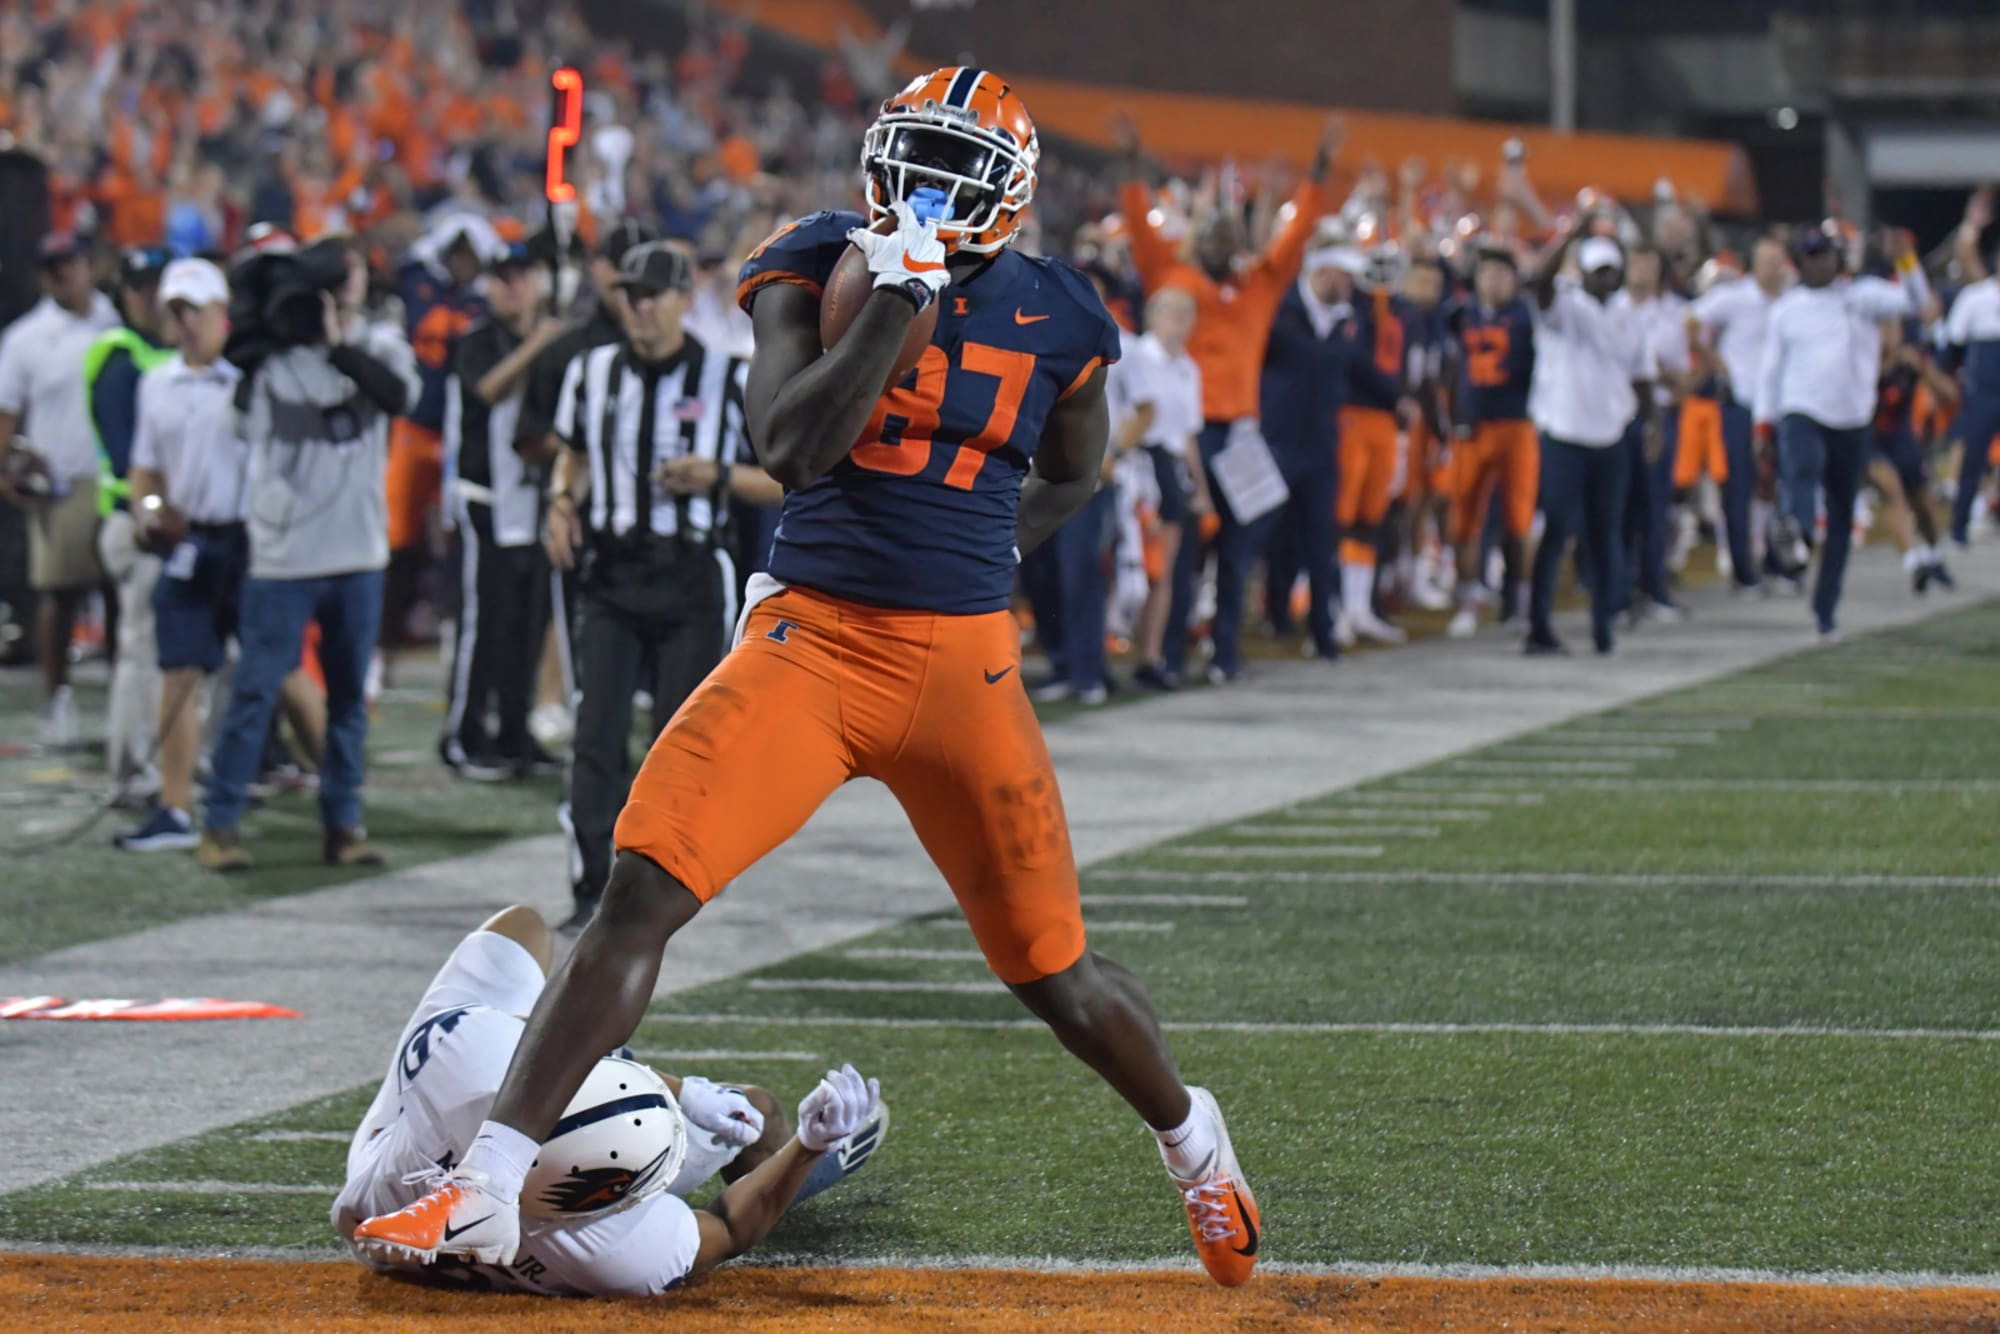 Illinois Game Saturday: Illinois vs. Virginia odds, prediction, injury report, schedule, live stream, and TV channel for week 2